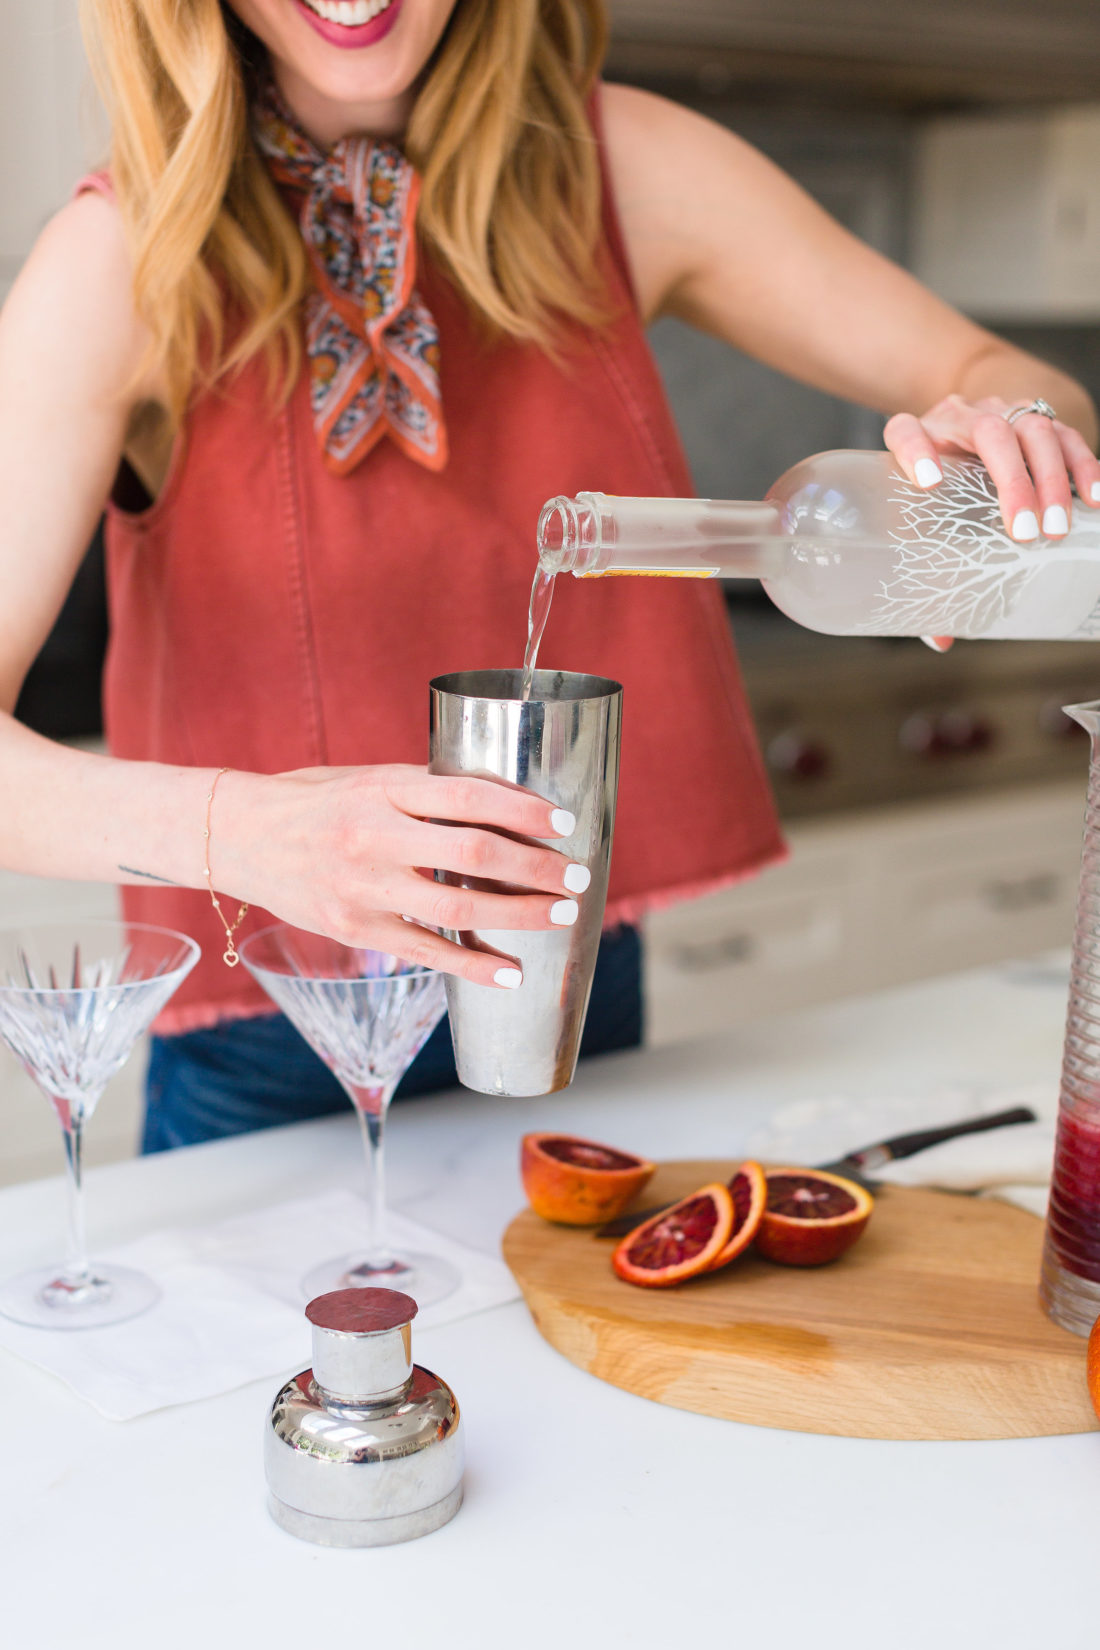 Eva Amurri Martino pours vodka in to a cocktail shaker to make blood orange and ginger martinis